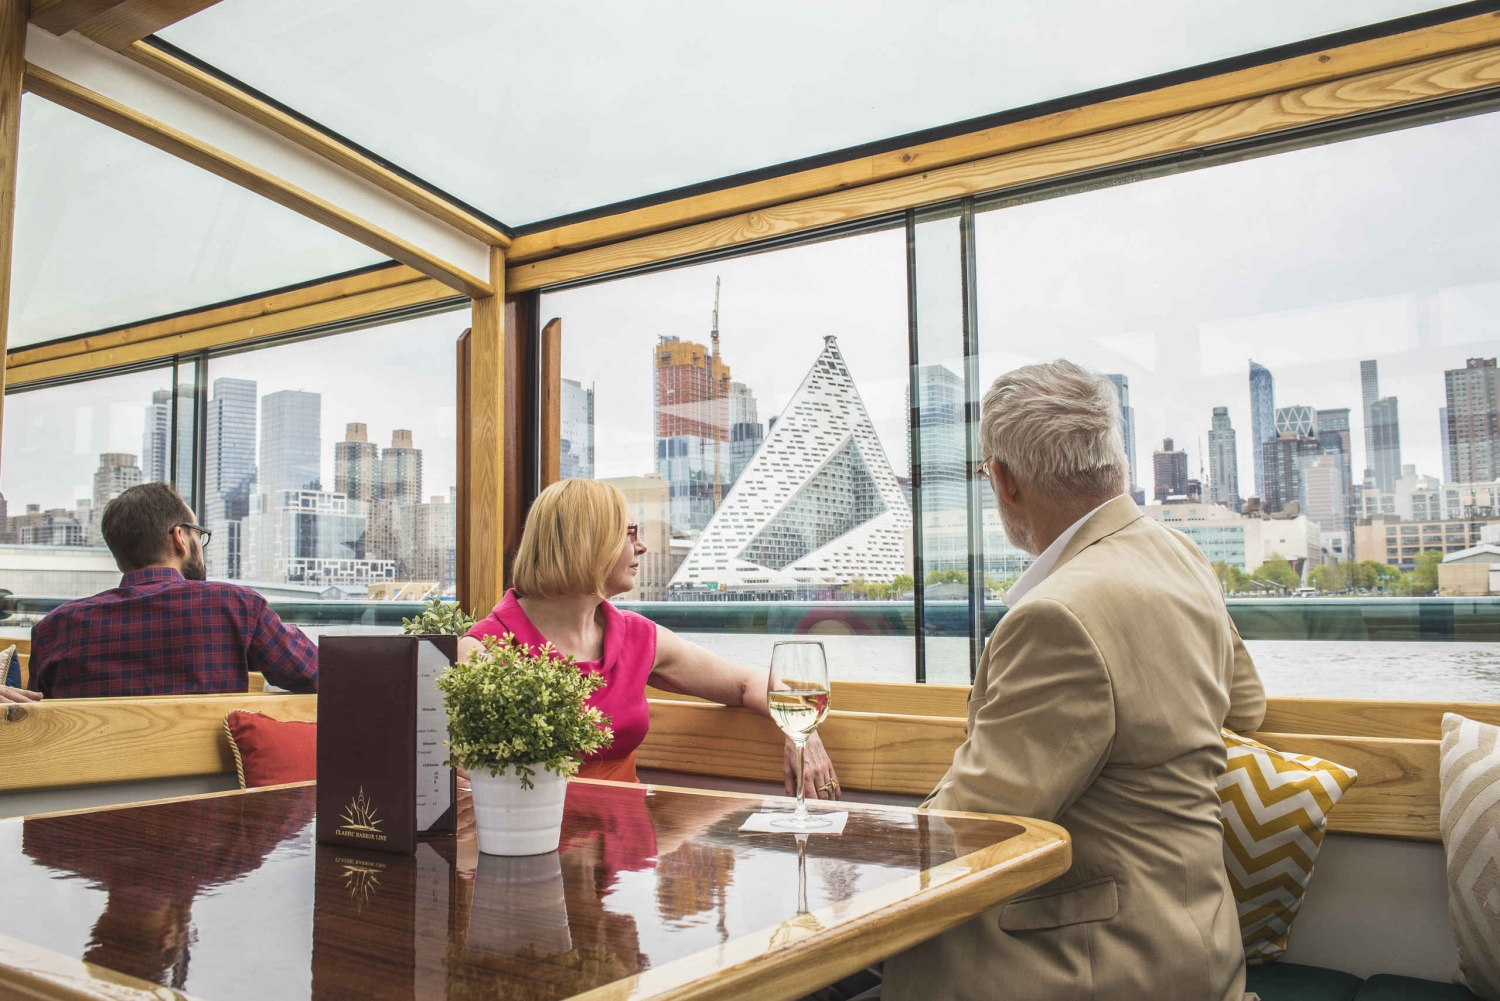 AIANY Lower Manhattan Architecture Tour by Luxury Yacht